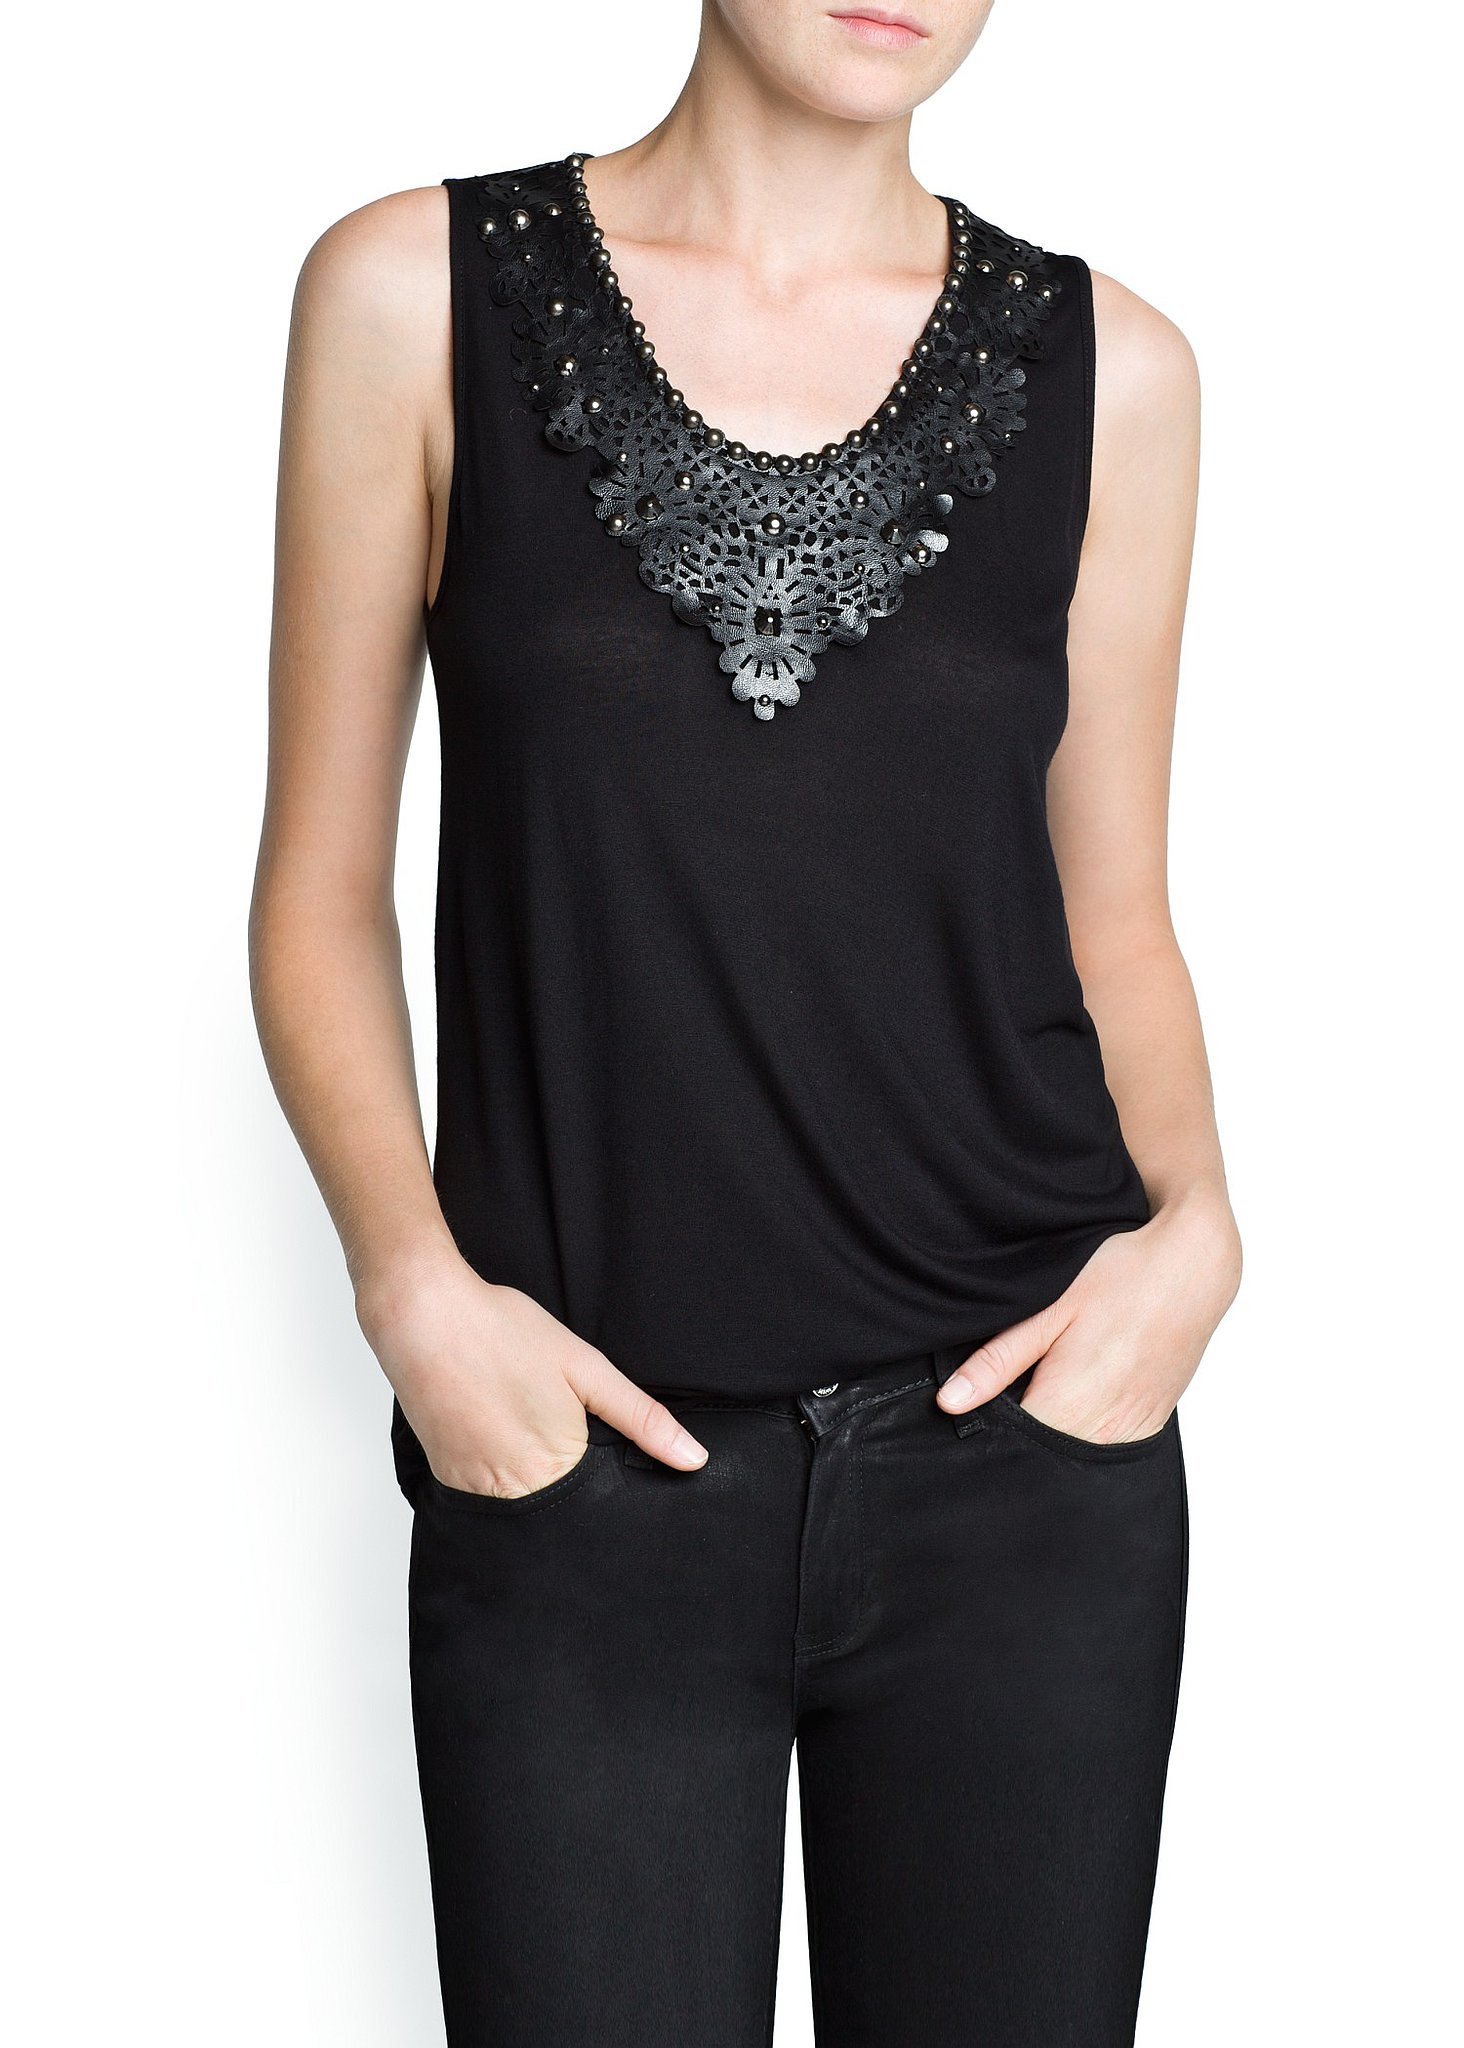 A touch of leather can add a luxe feel to basics. This Mango tank ($35) is far from simple thanks to the laser-cut acc